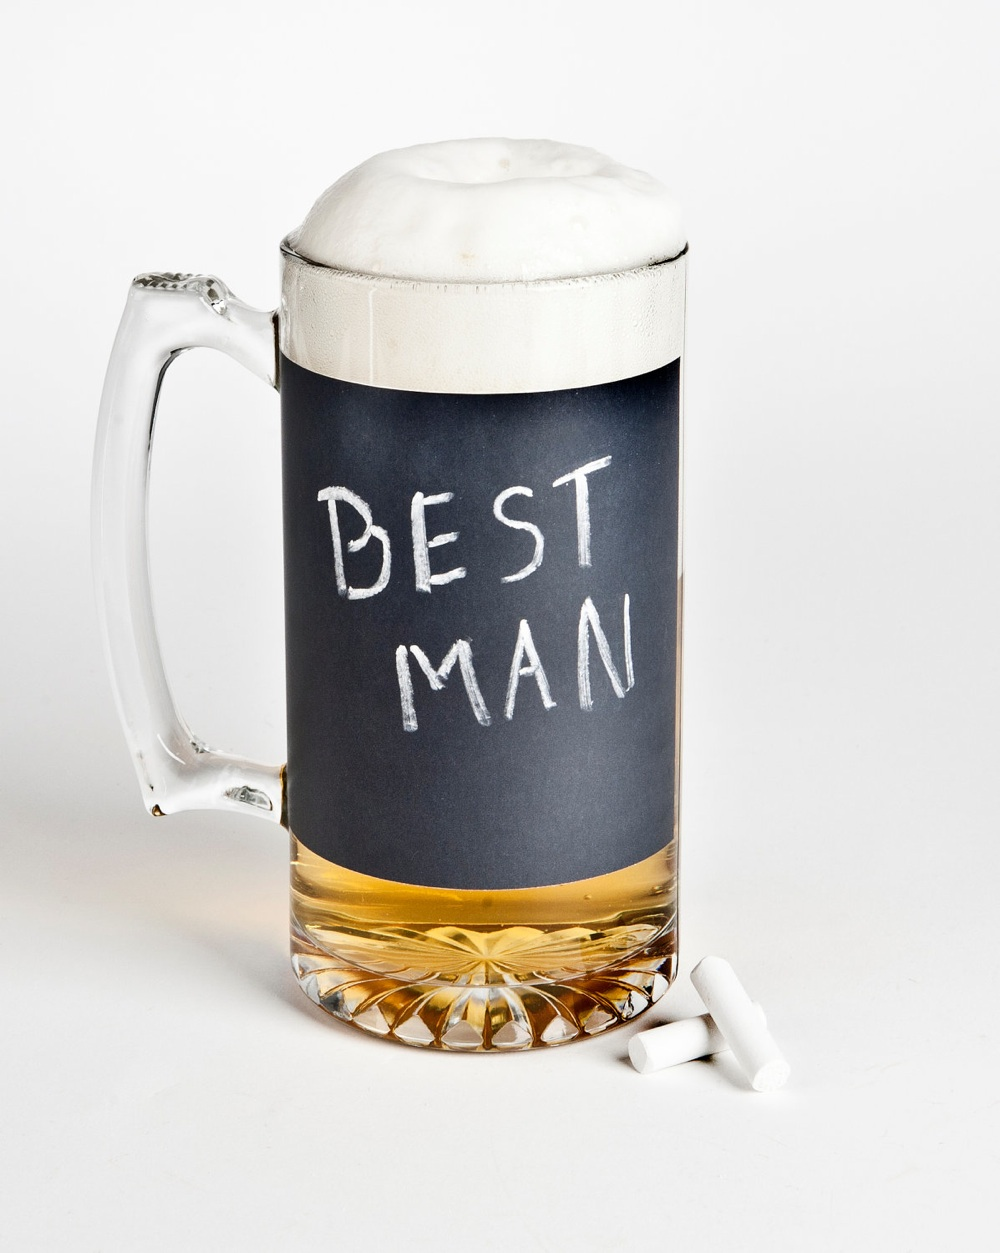 Wedding Gift Beer Mugs : best man wedding gifts beer mug chalkboard OneWed.com